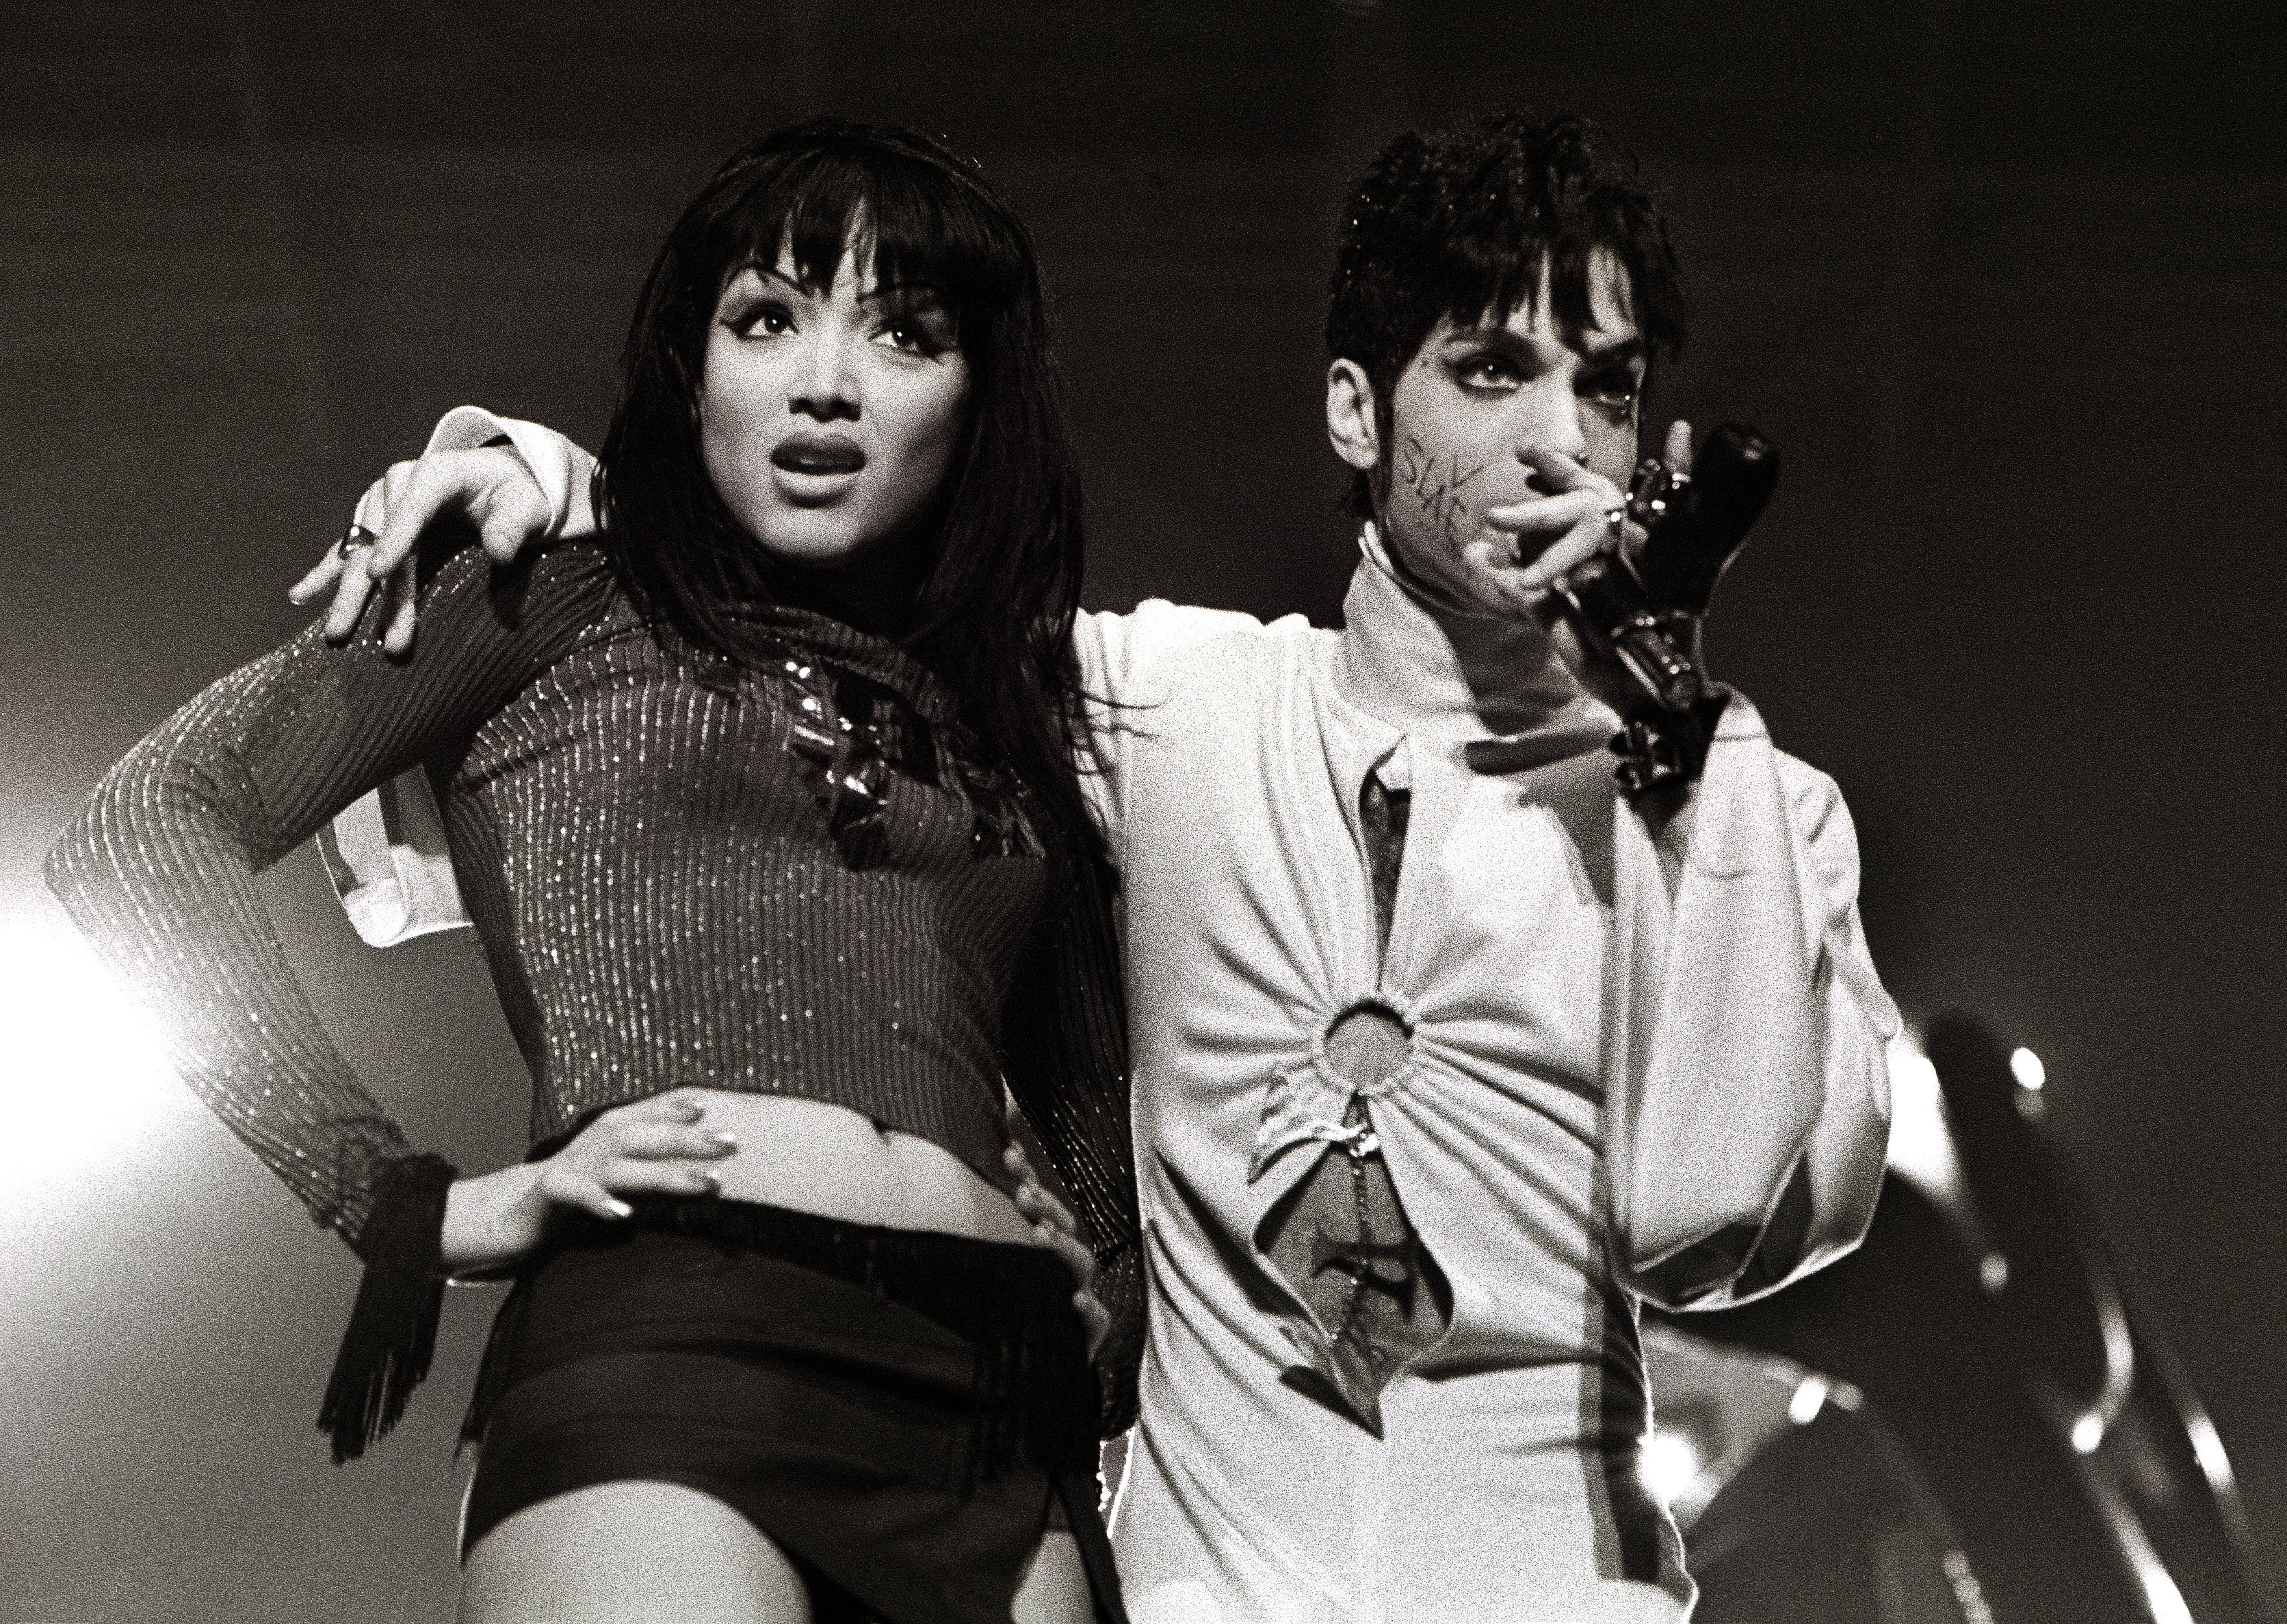 Prince and Mayte Garcia perform on stage at Brabant hallen, Den Bosch, Netherlands, 24th March 1995 | Photo: Getty Images